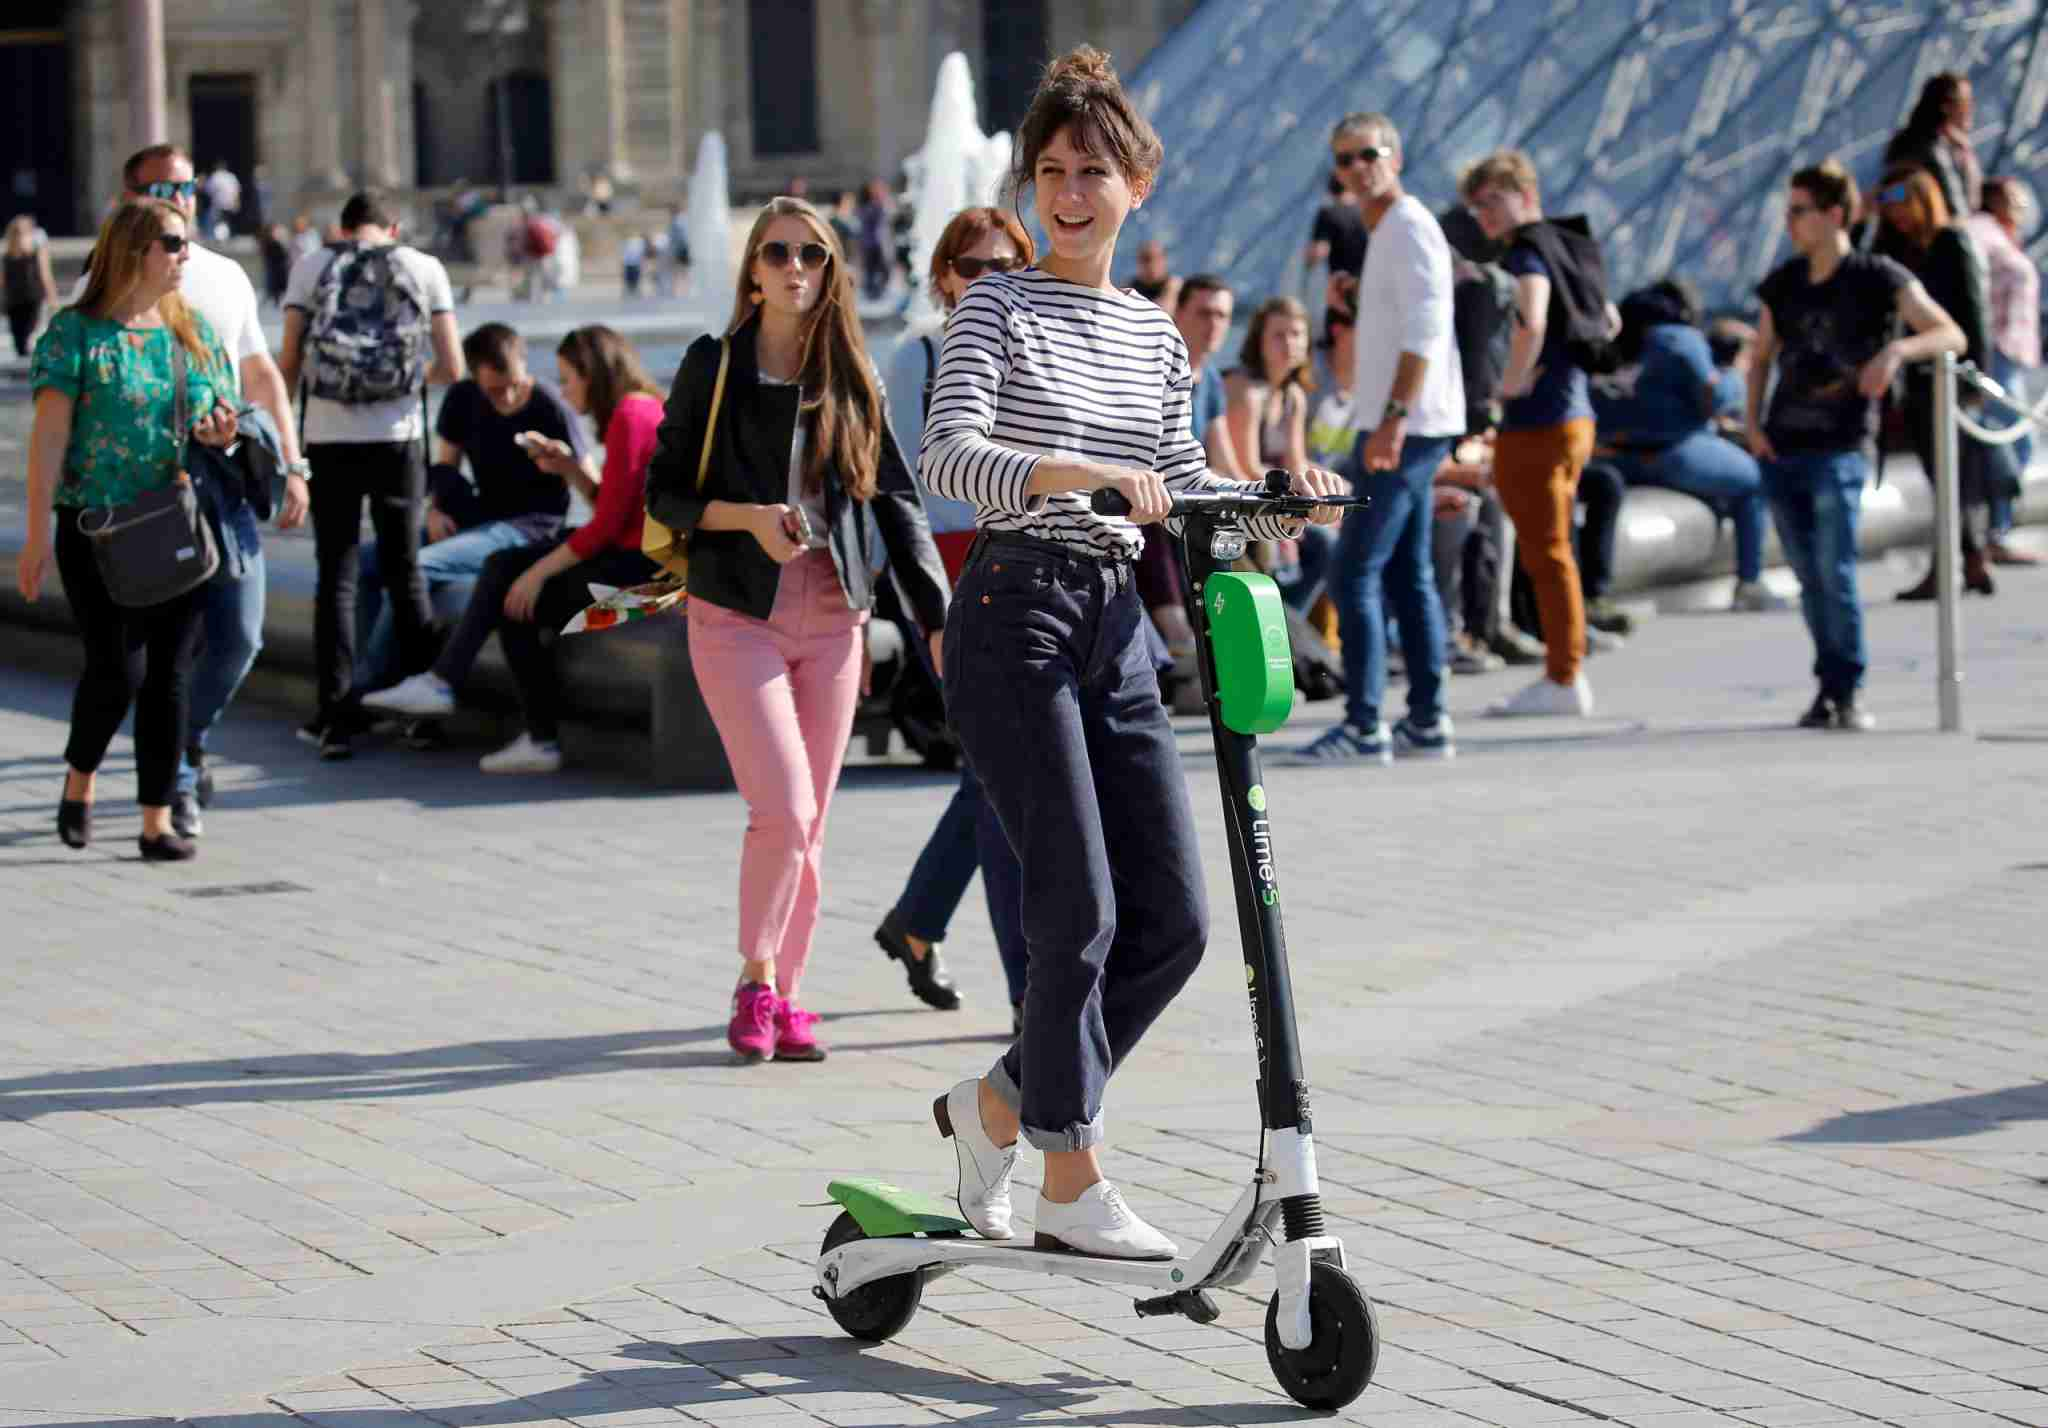 PARIS, FRANCE - OCTOBER 09: A woman rides an electric scooter Lime-S from the bike sharing service company